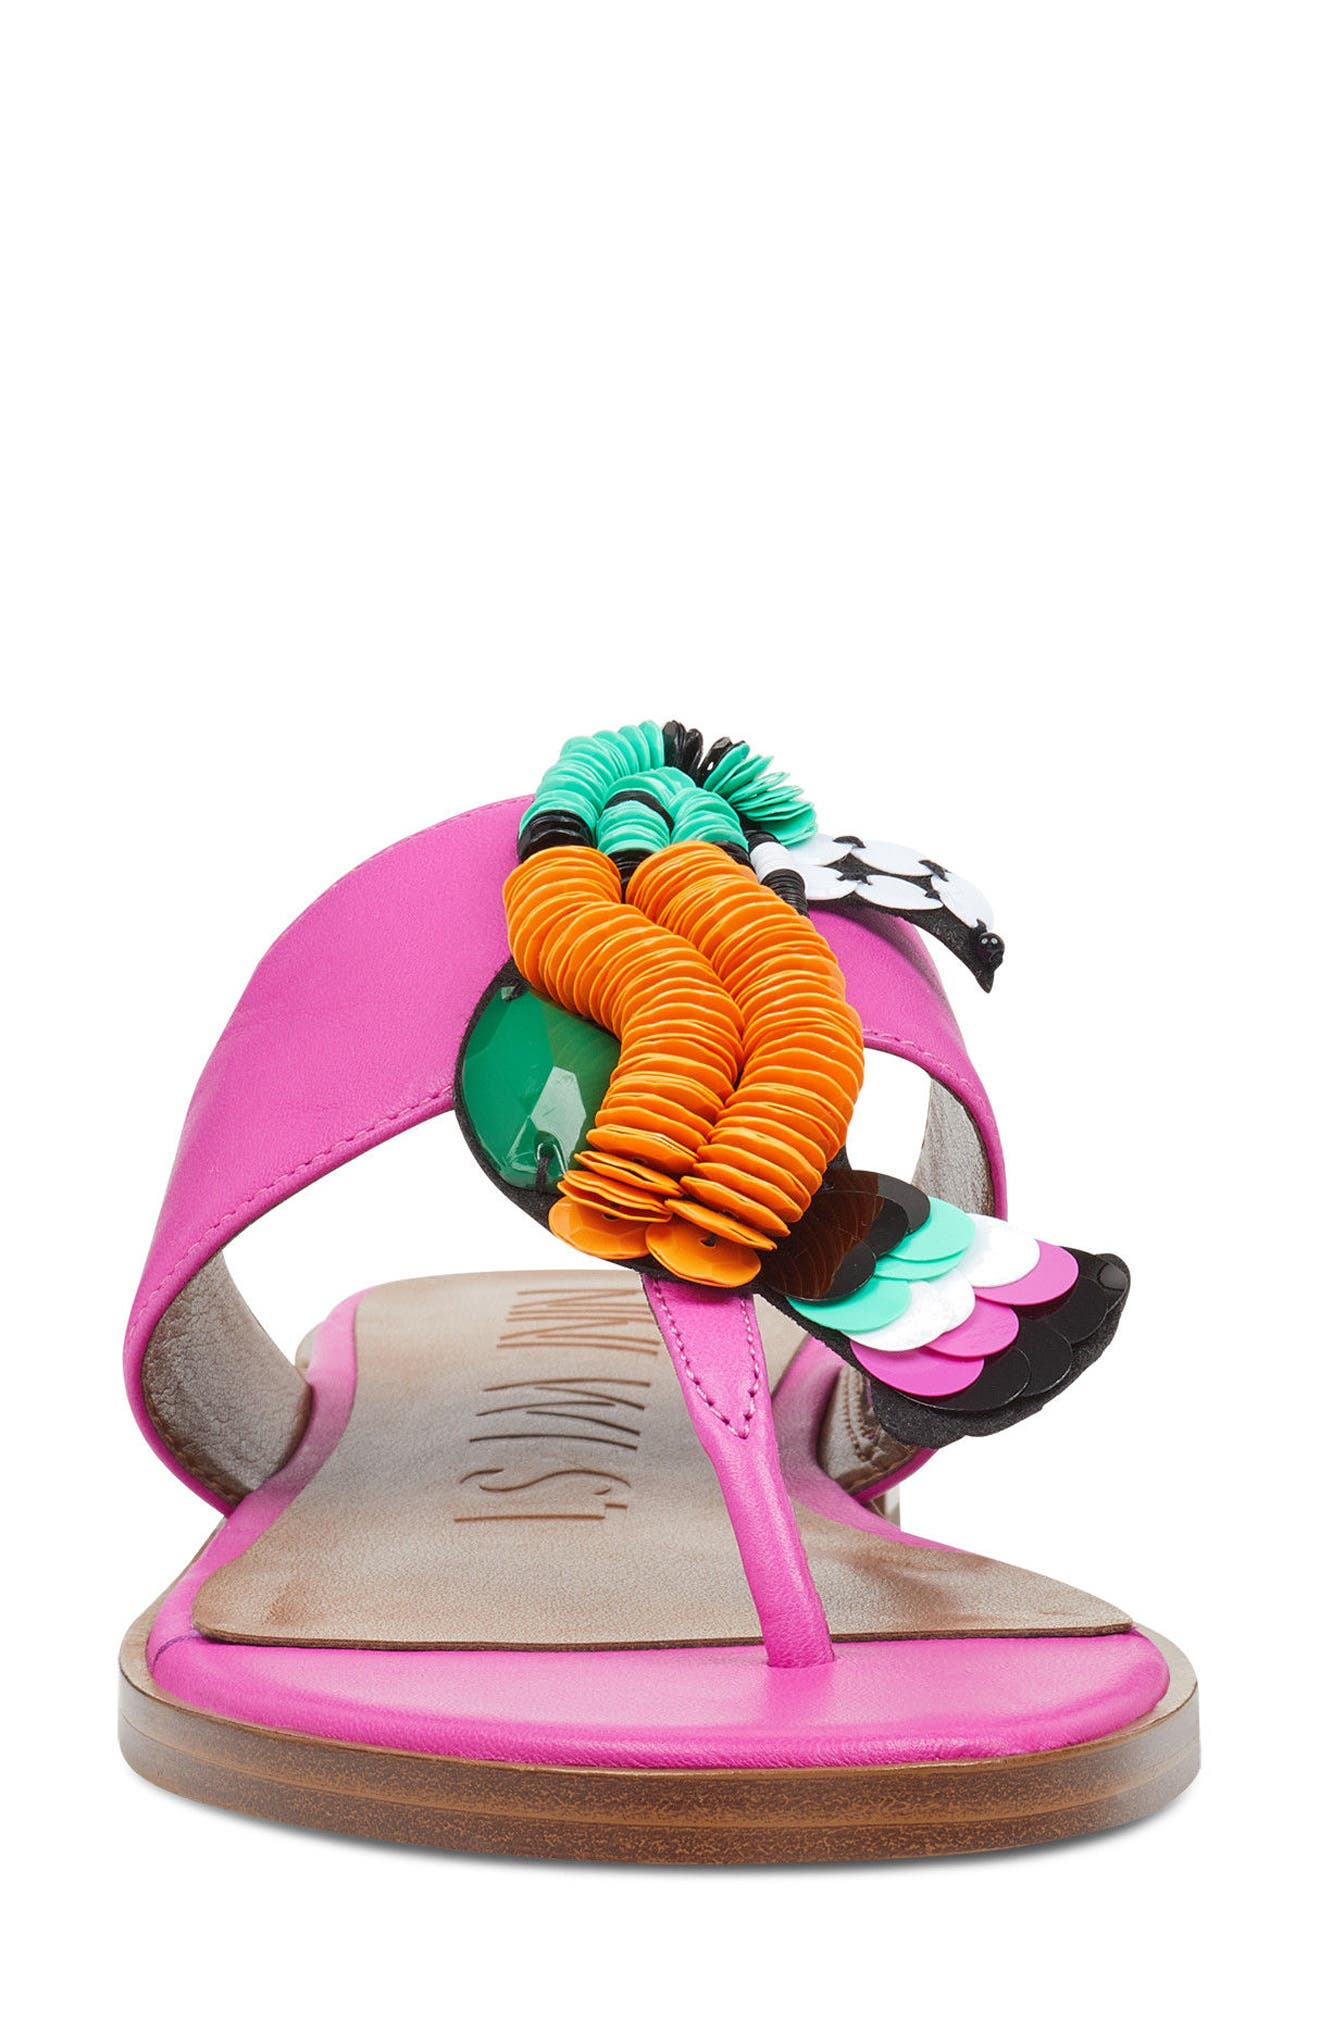 Roseriver Sandal,                             Alternate thumbnail 4, color,                             PINK LEATHER